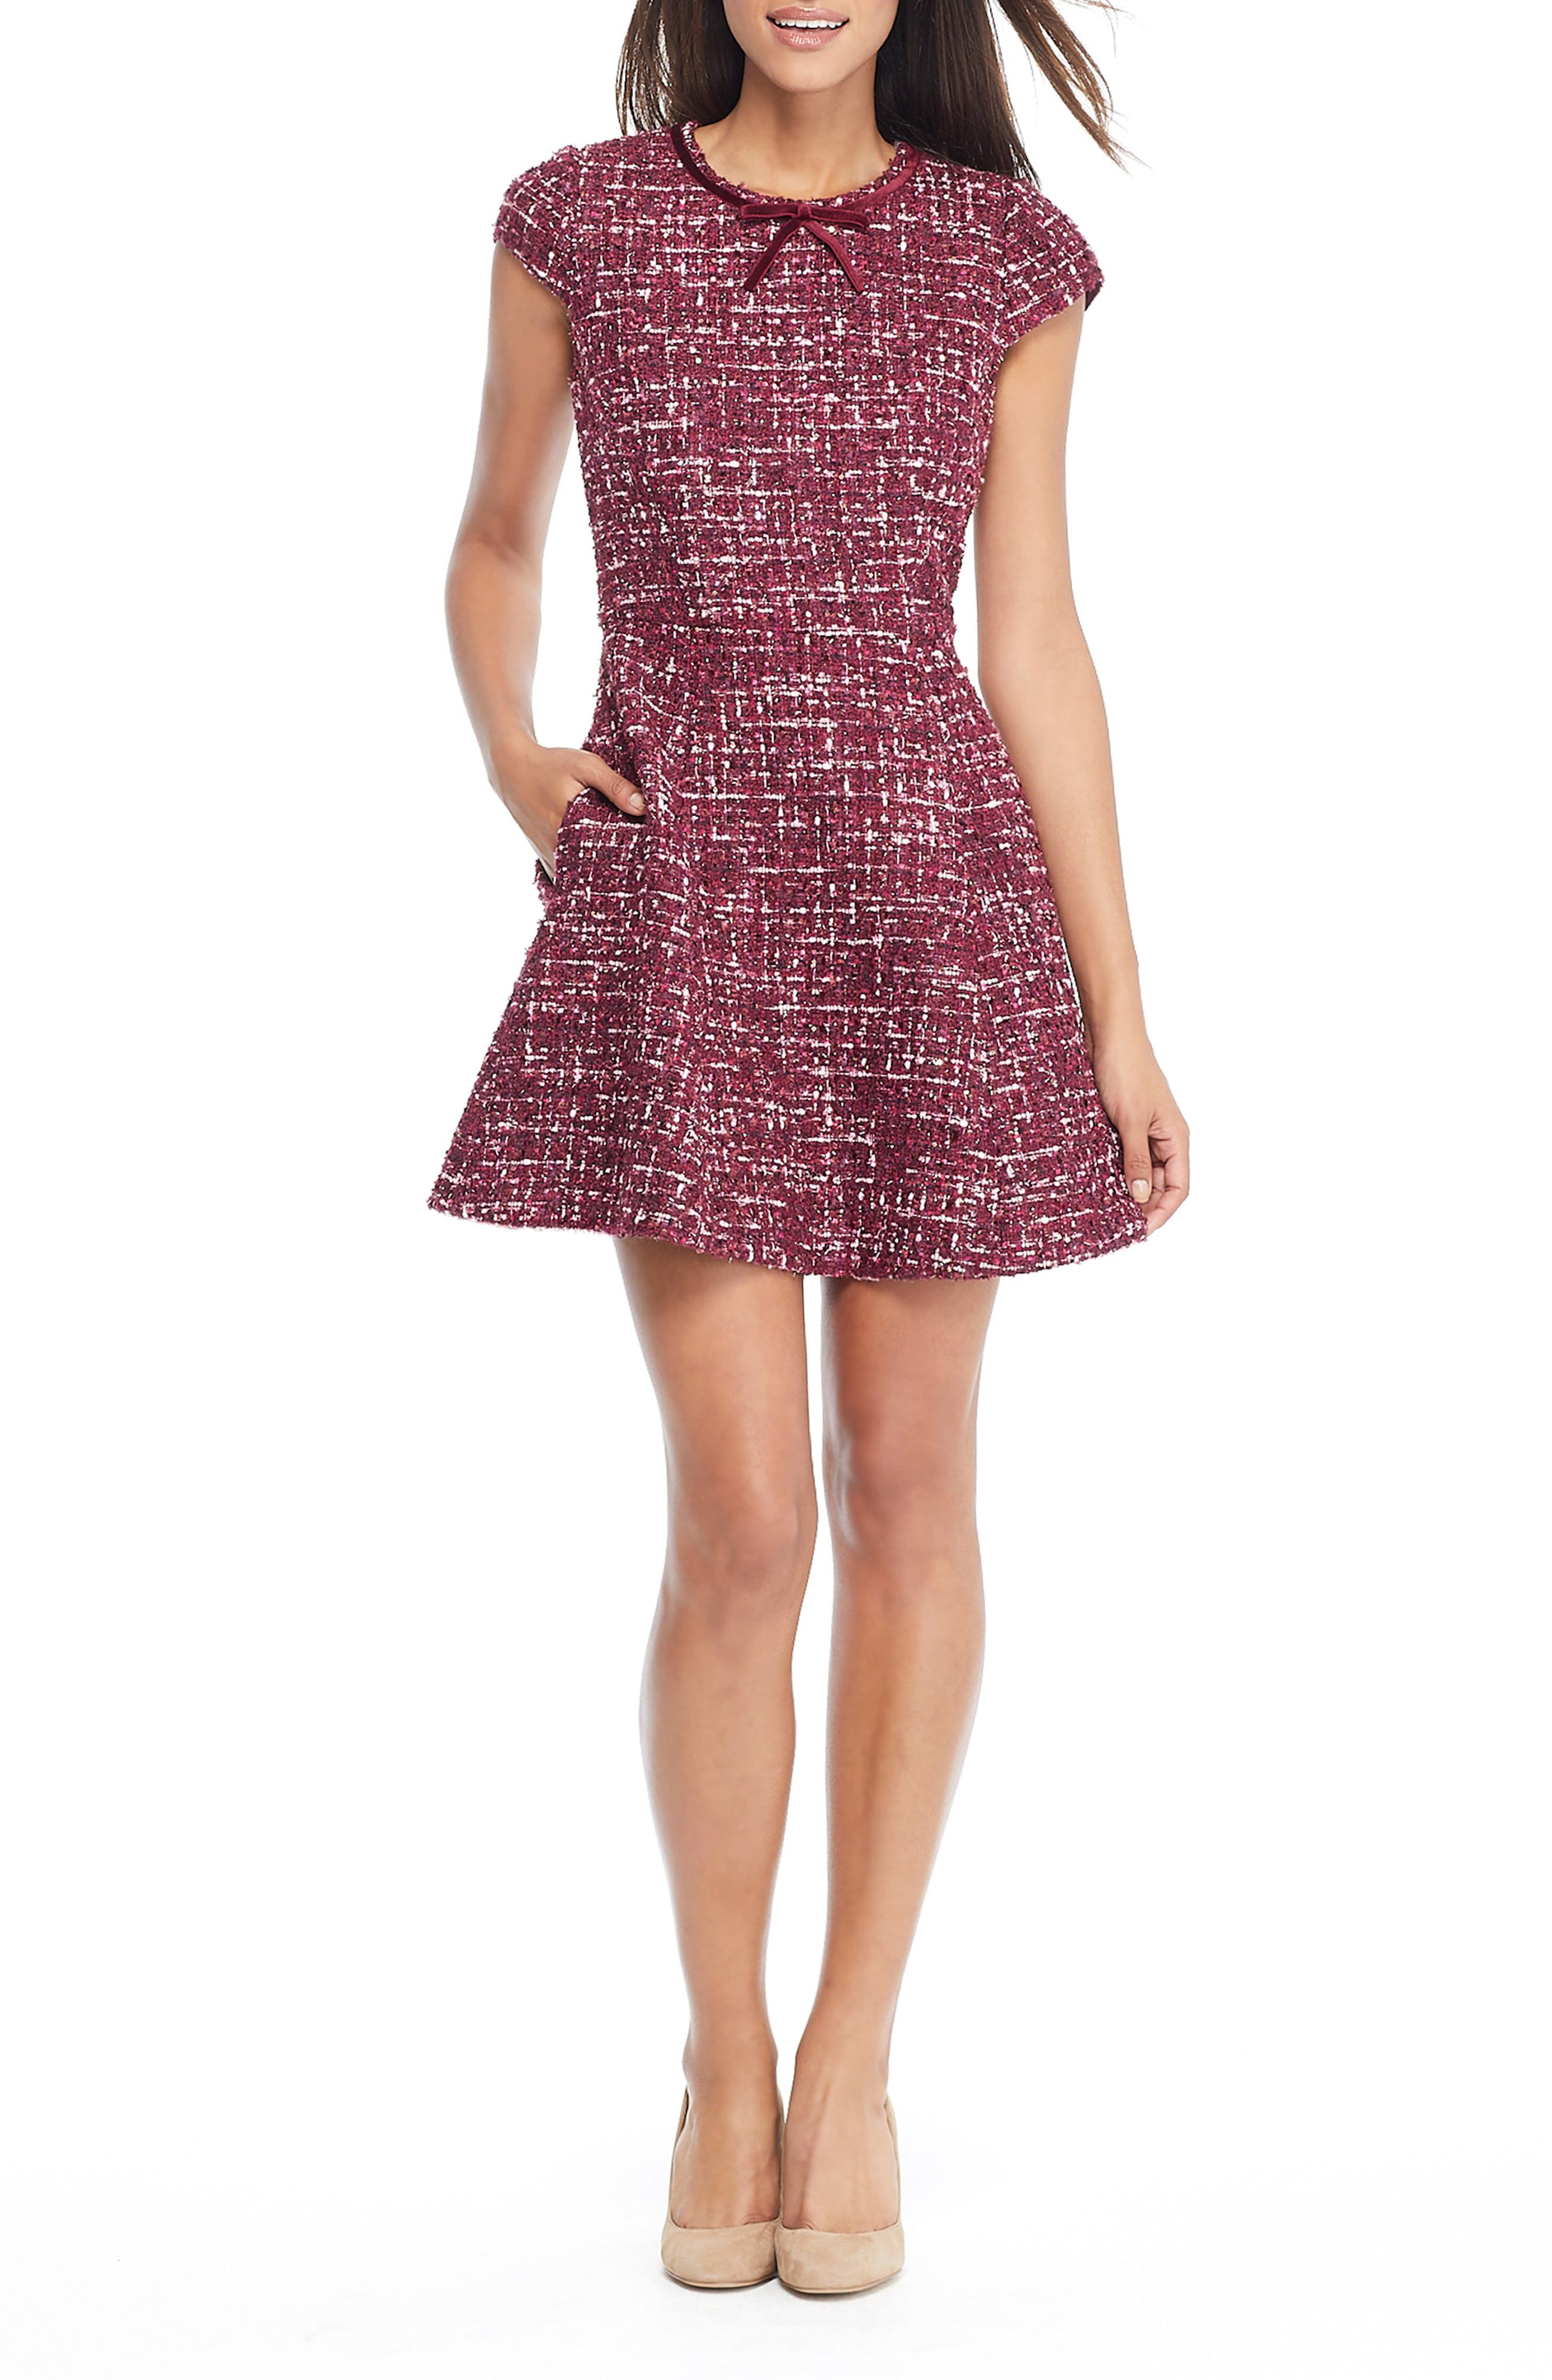 GAL MEETS GLAM COLLECTION Nell Bouclé Dreams Tweed Fit & Flare Dress, Main, color, 650